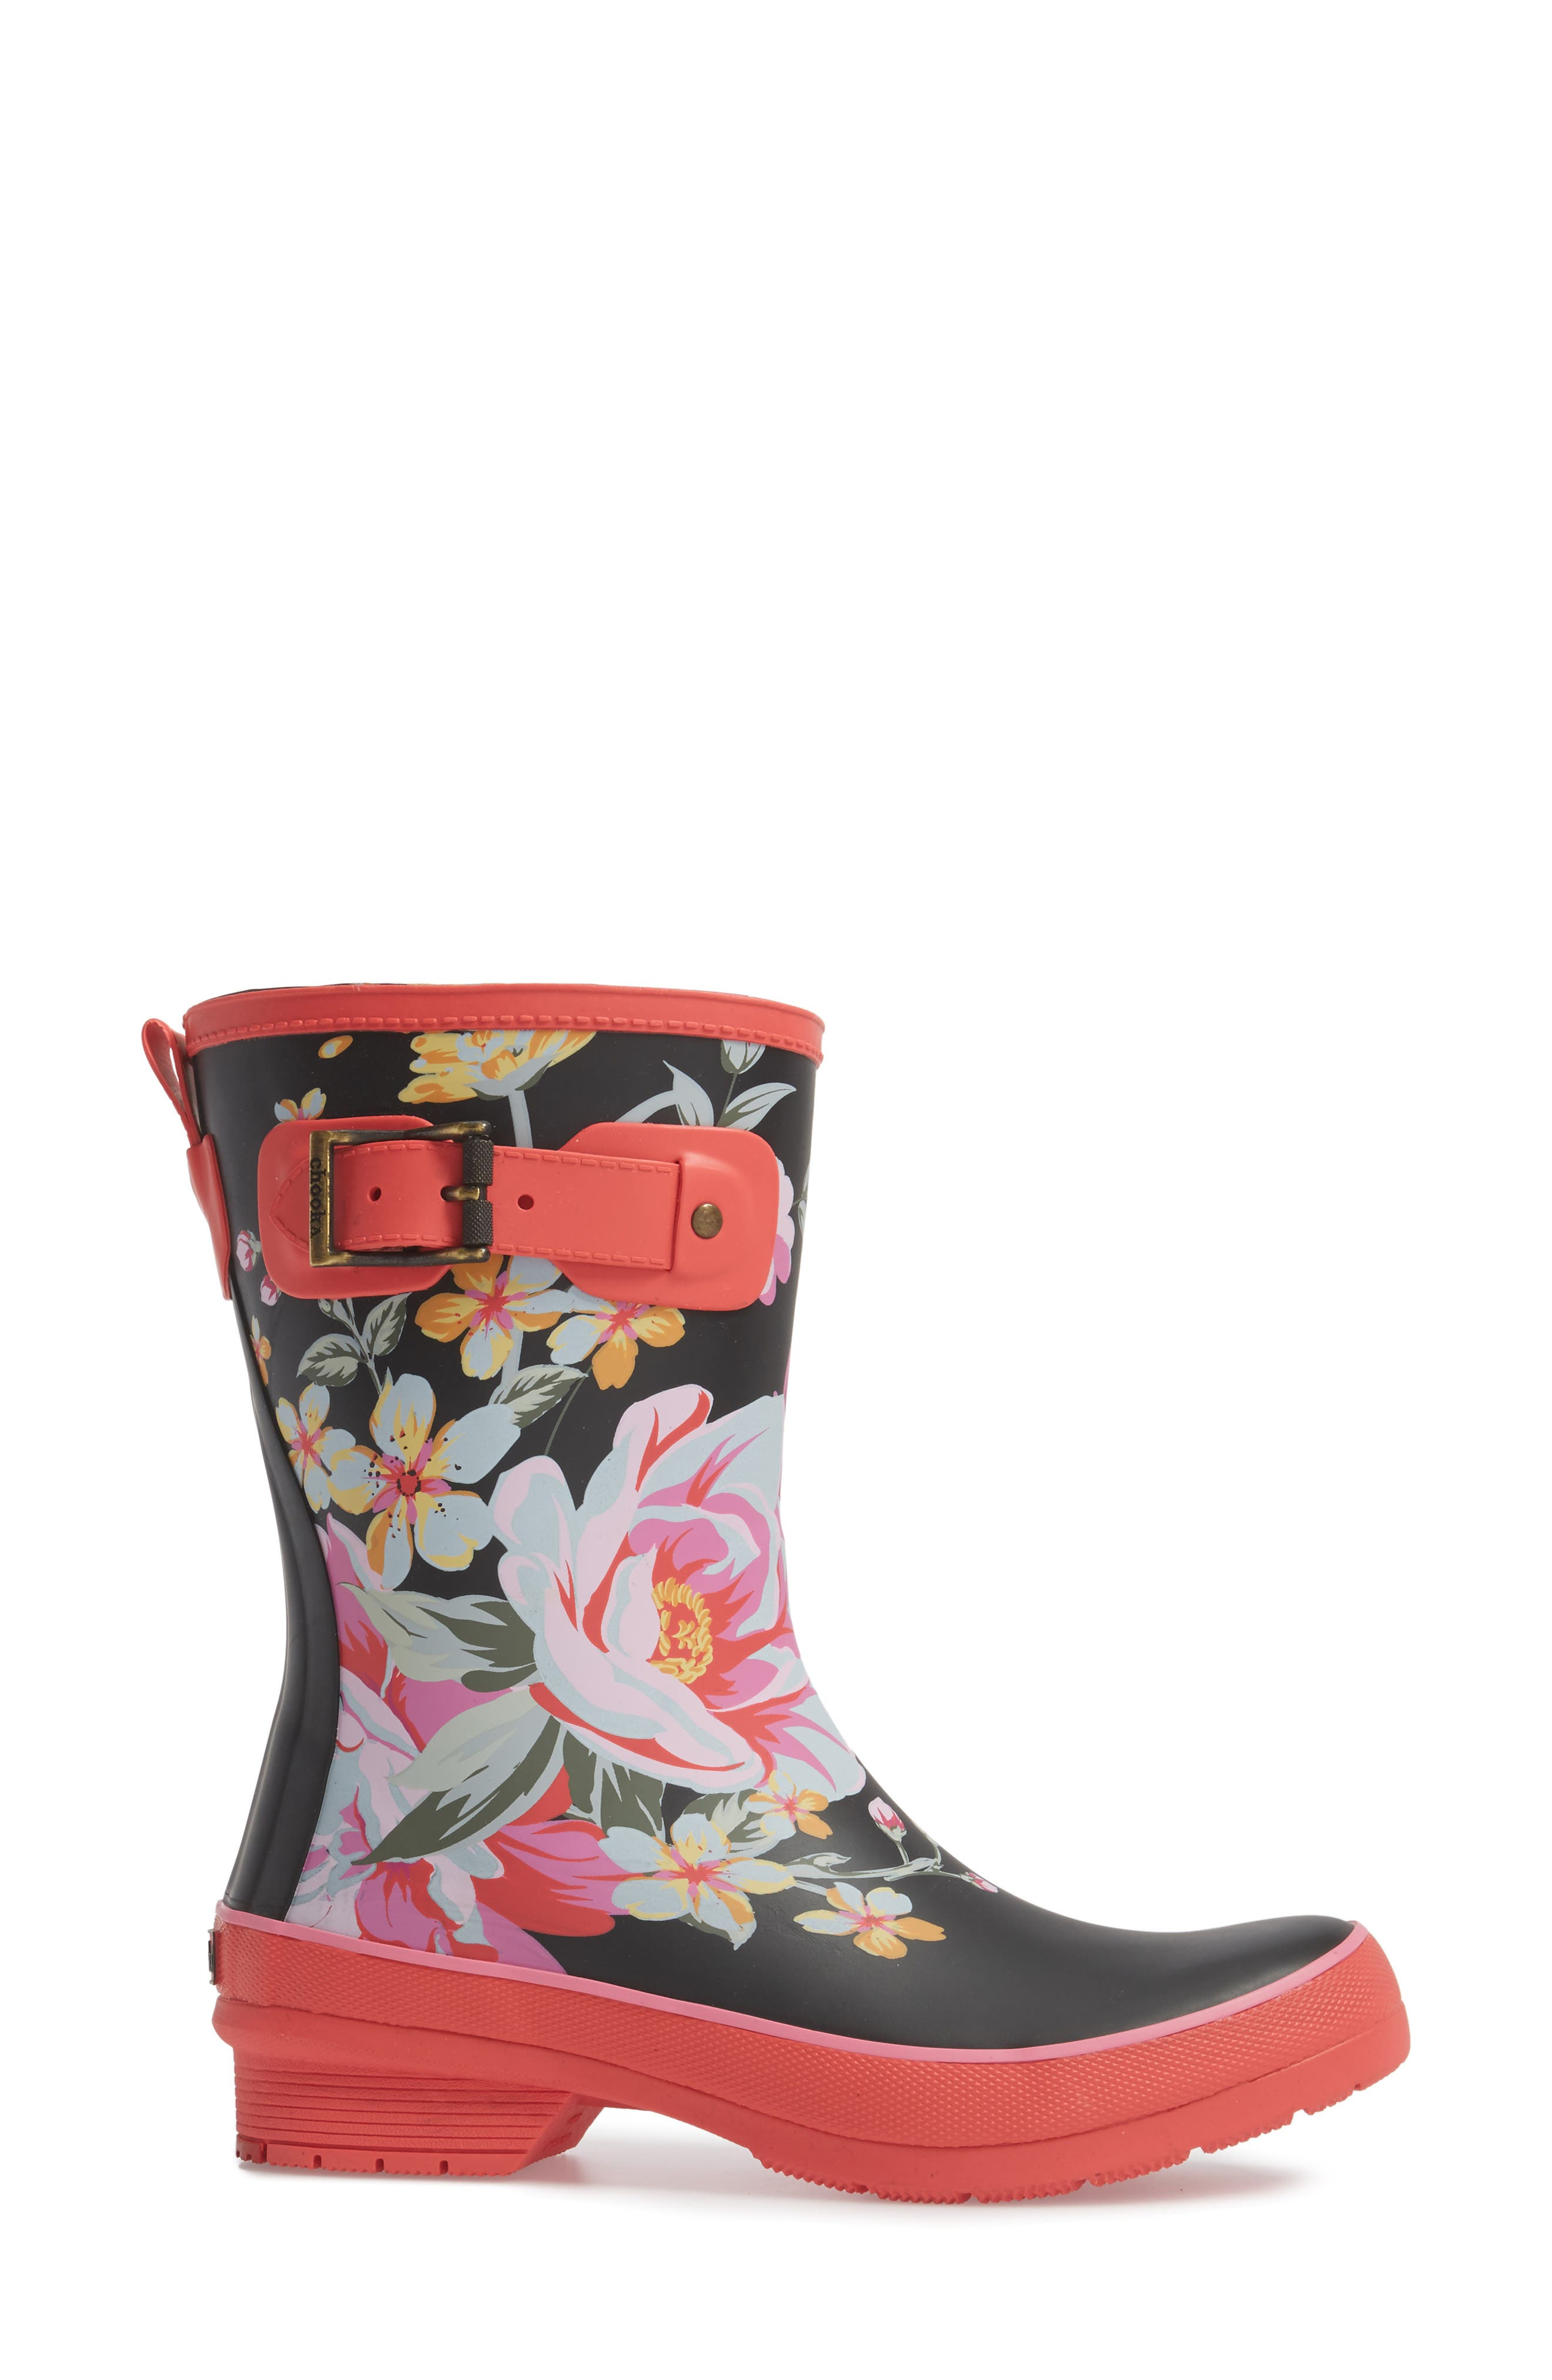 Hilde Mid Rain Boot,                             Alternate thumbnail 3, color,                             Fuchsia